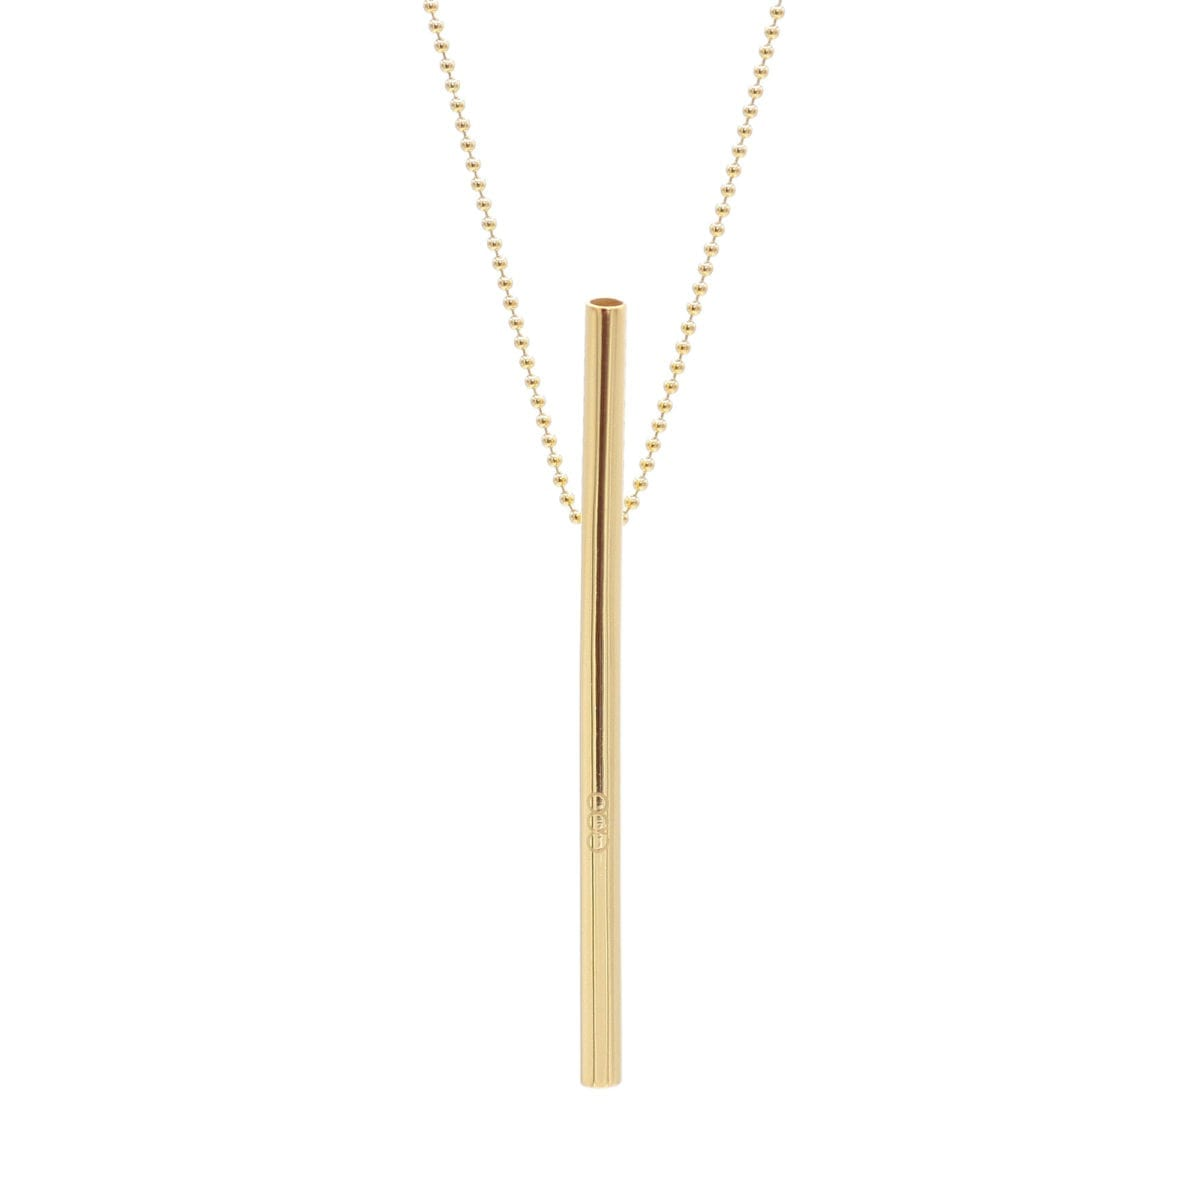 OOVO gold vocal straw phonation necklace